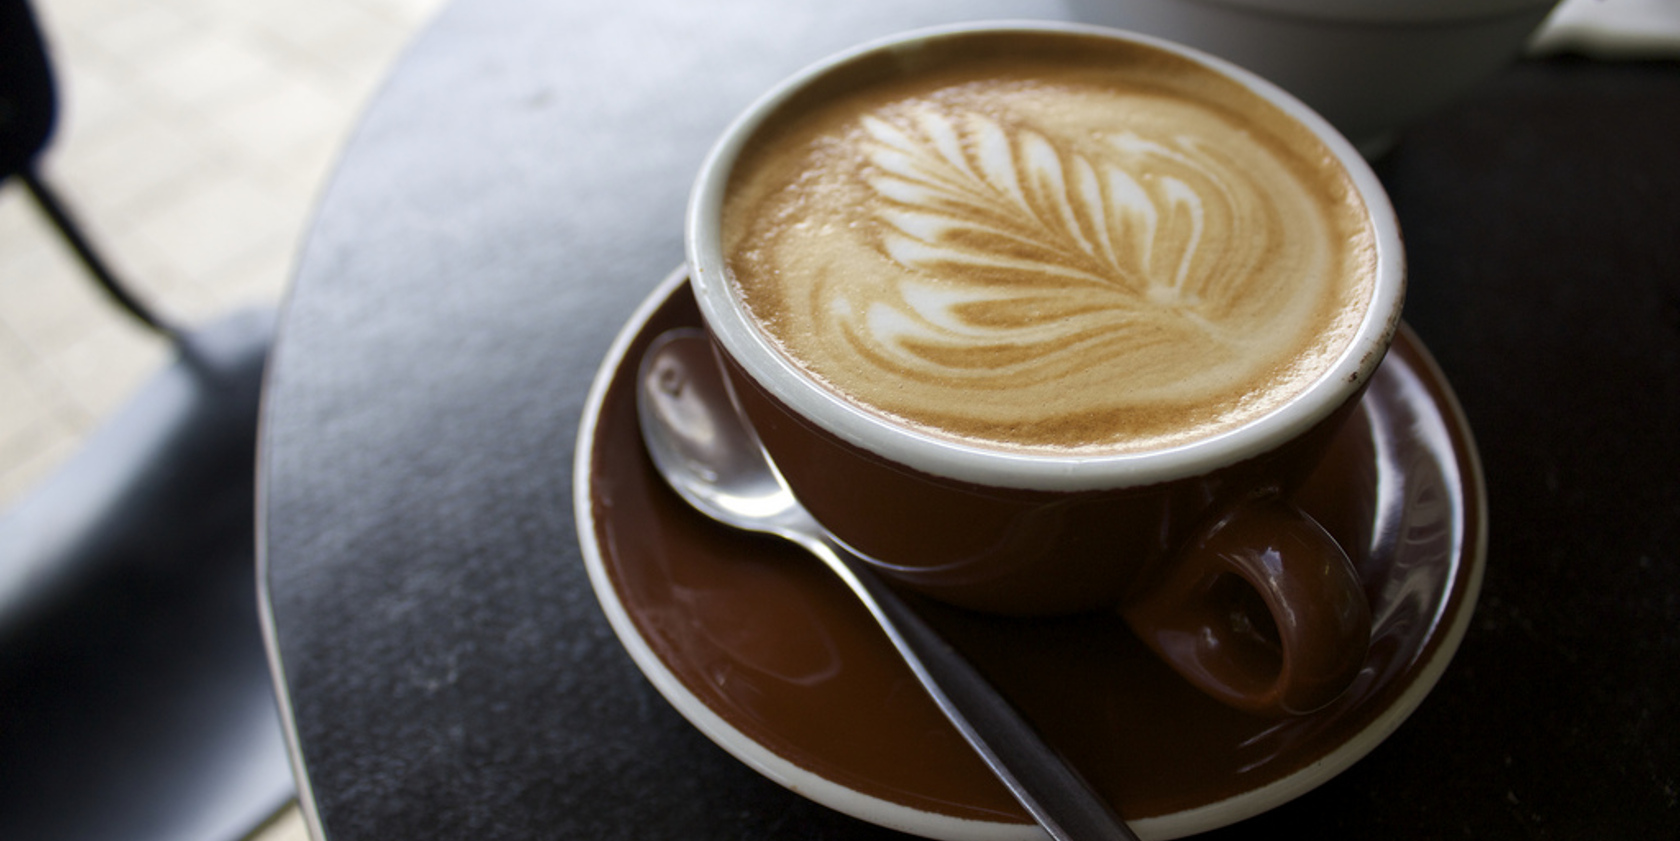 Photographer shot of a cup of coffee with a leaf shape drizzled into the coffee